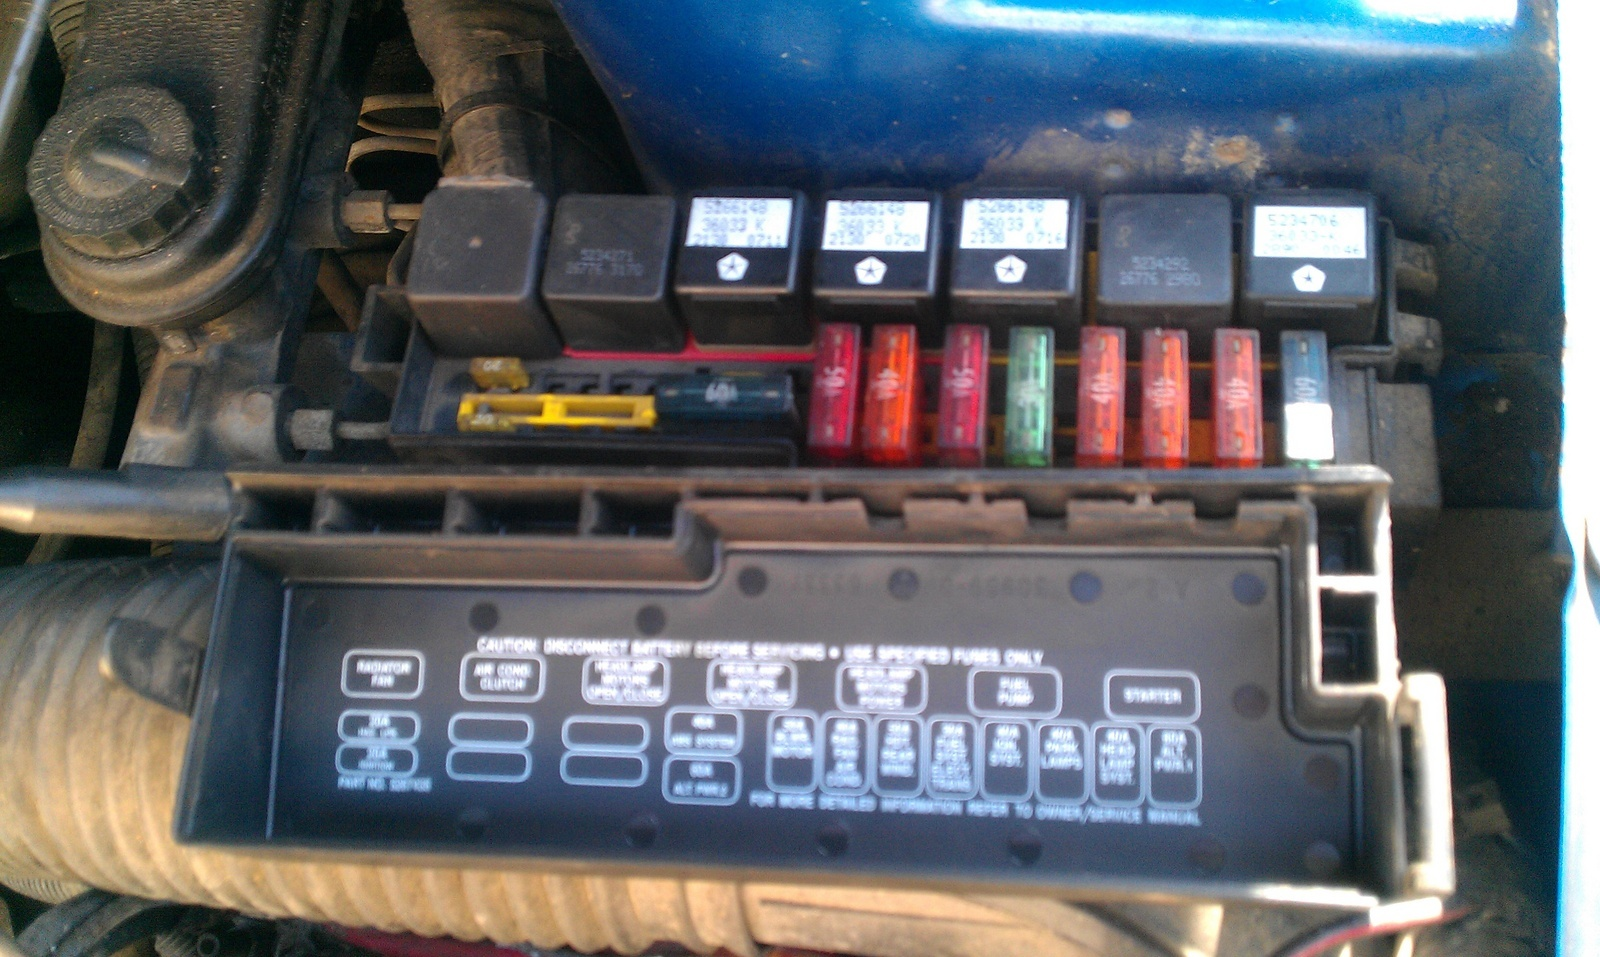 Lexus Sc400 Fuse Box Location Wiring Library Diagram Of 1994 Honda Accord Dodge Daytona Questions My Fuel Pump Stays On After I Turn The Car Off What